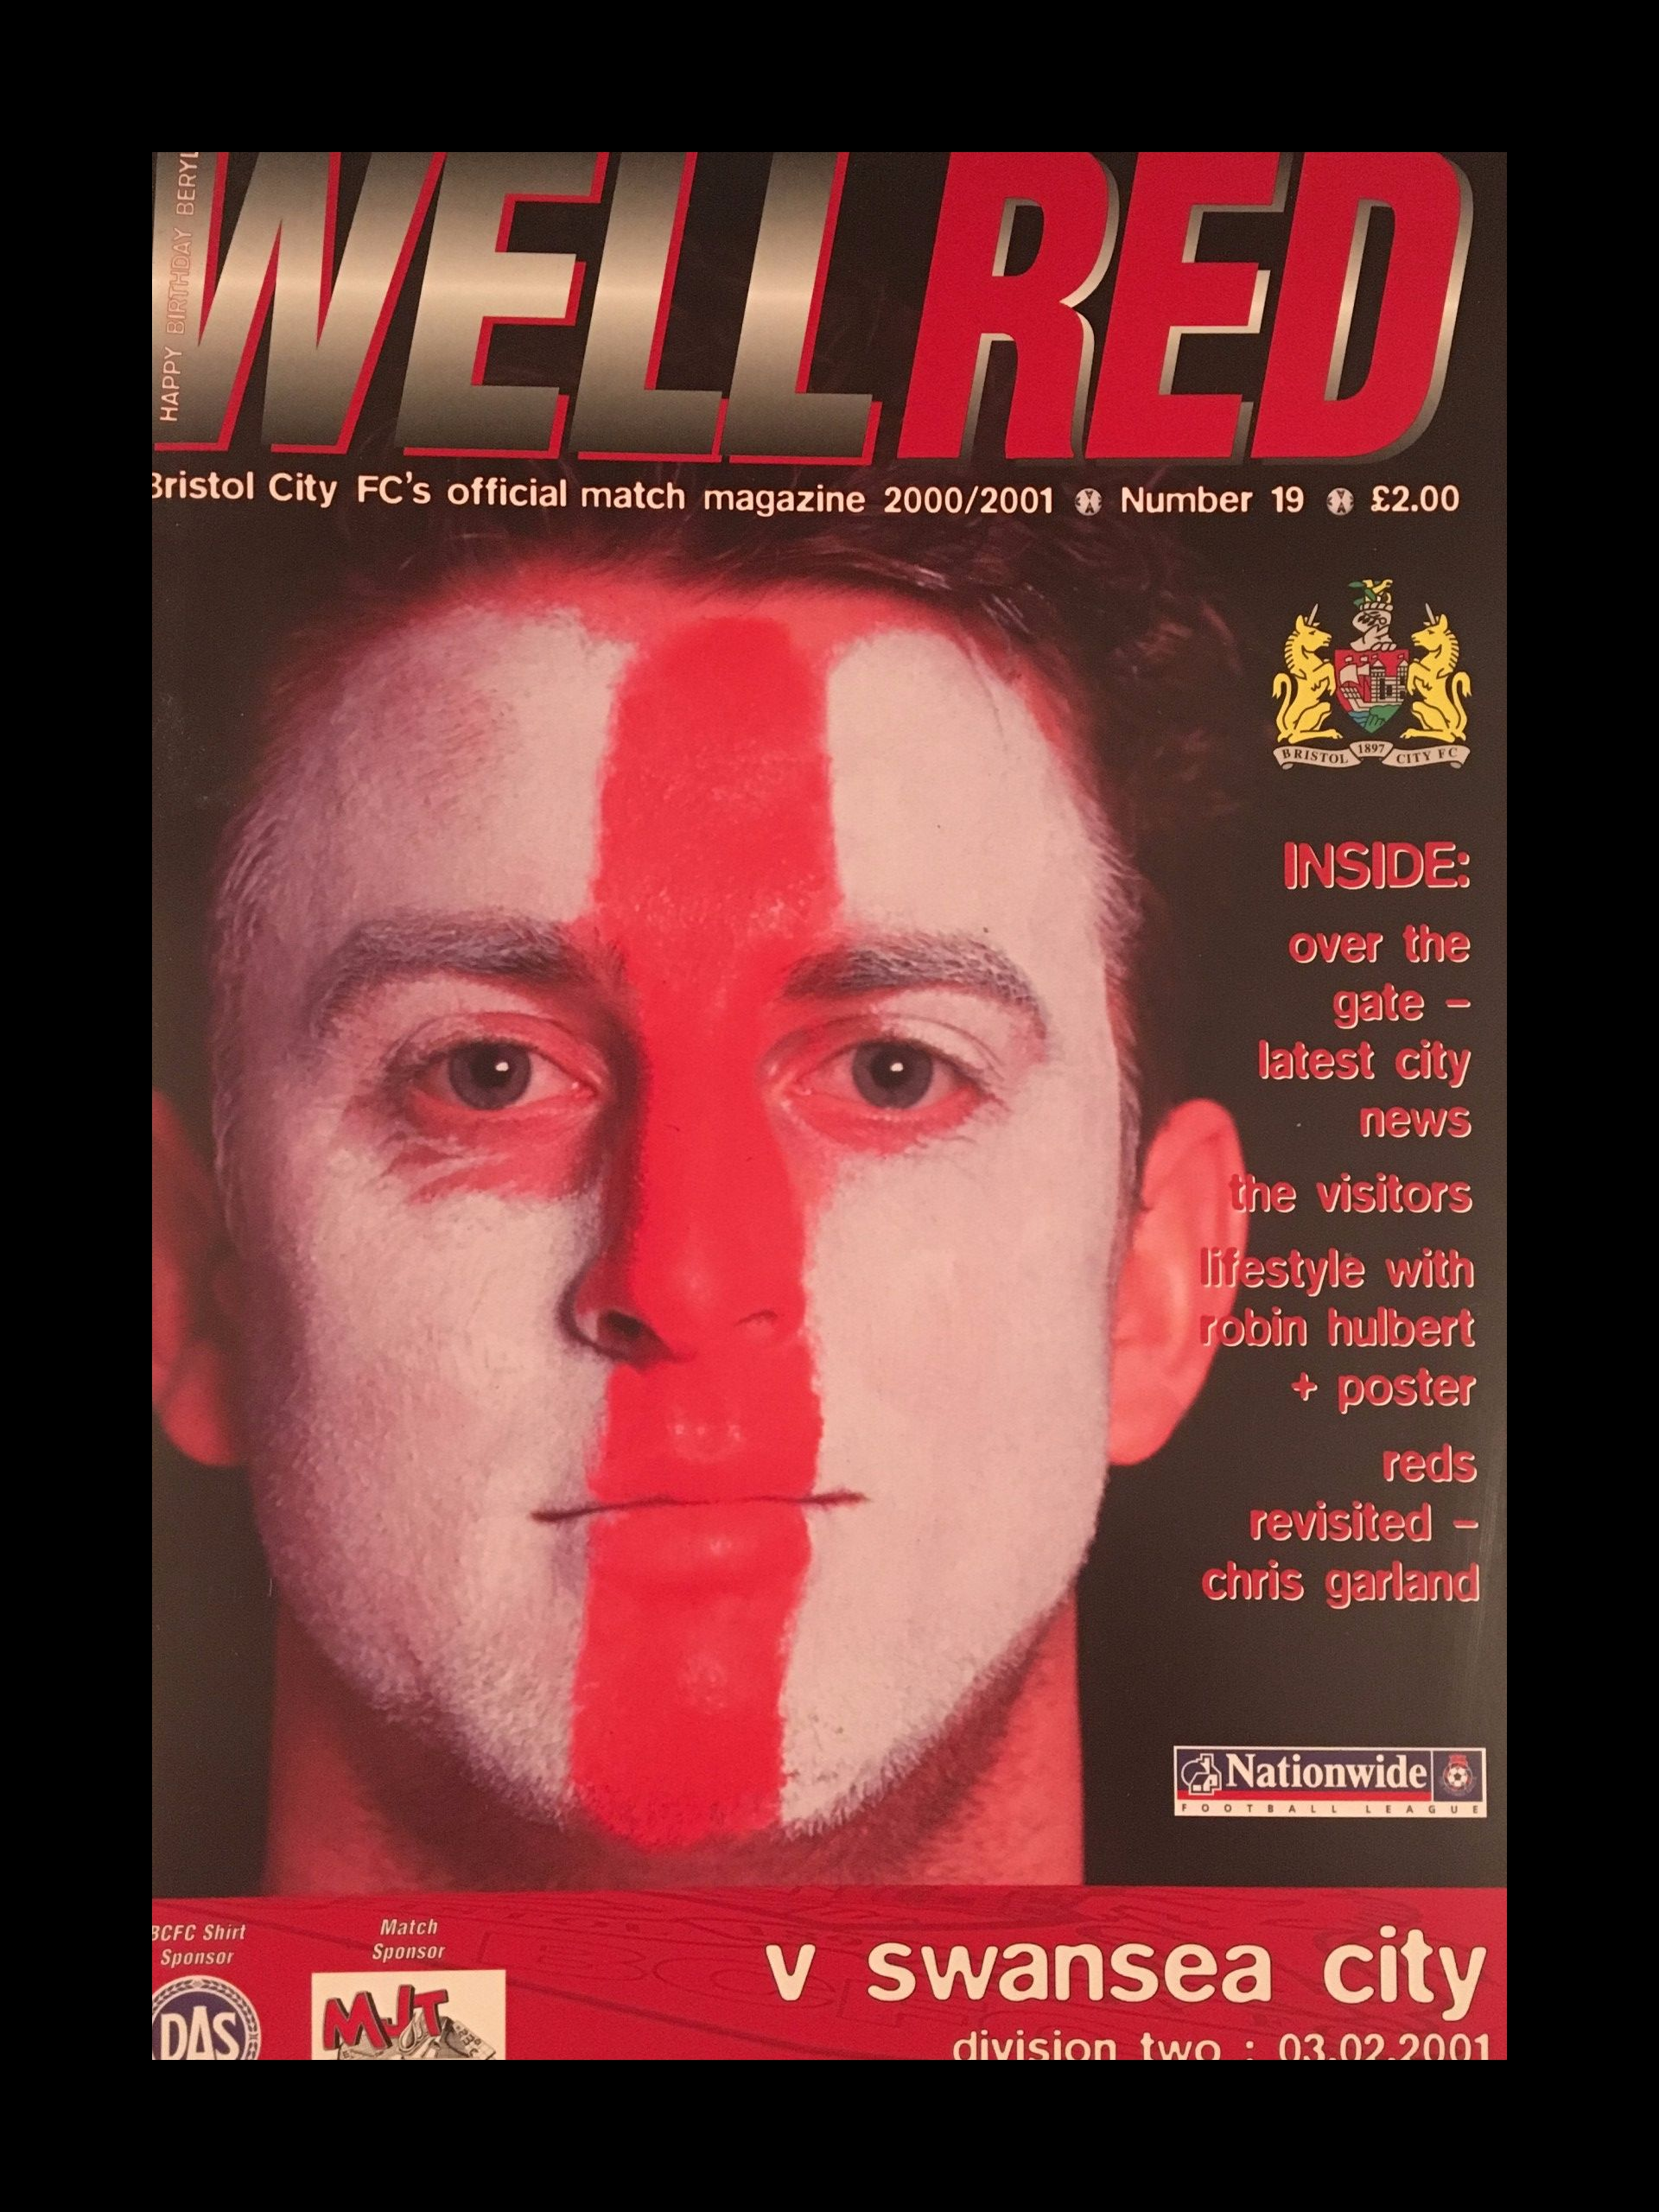 Bristol City v Swansea City 03-02-2001 Programme